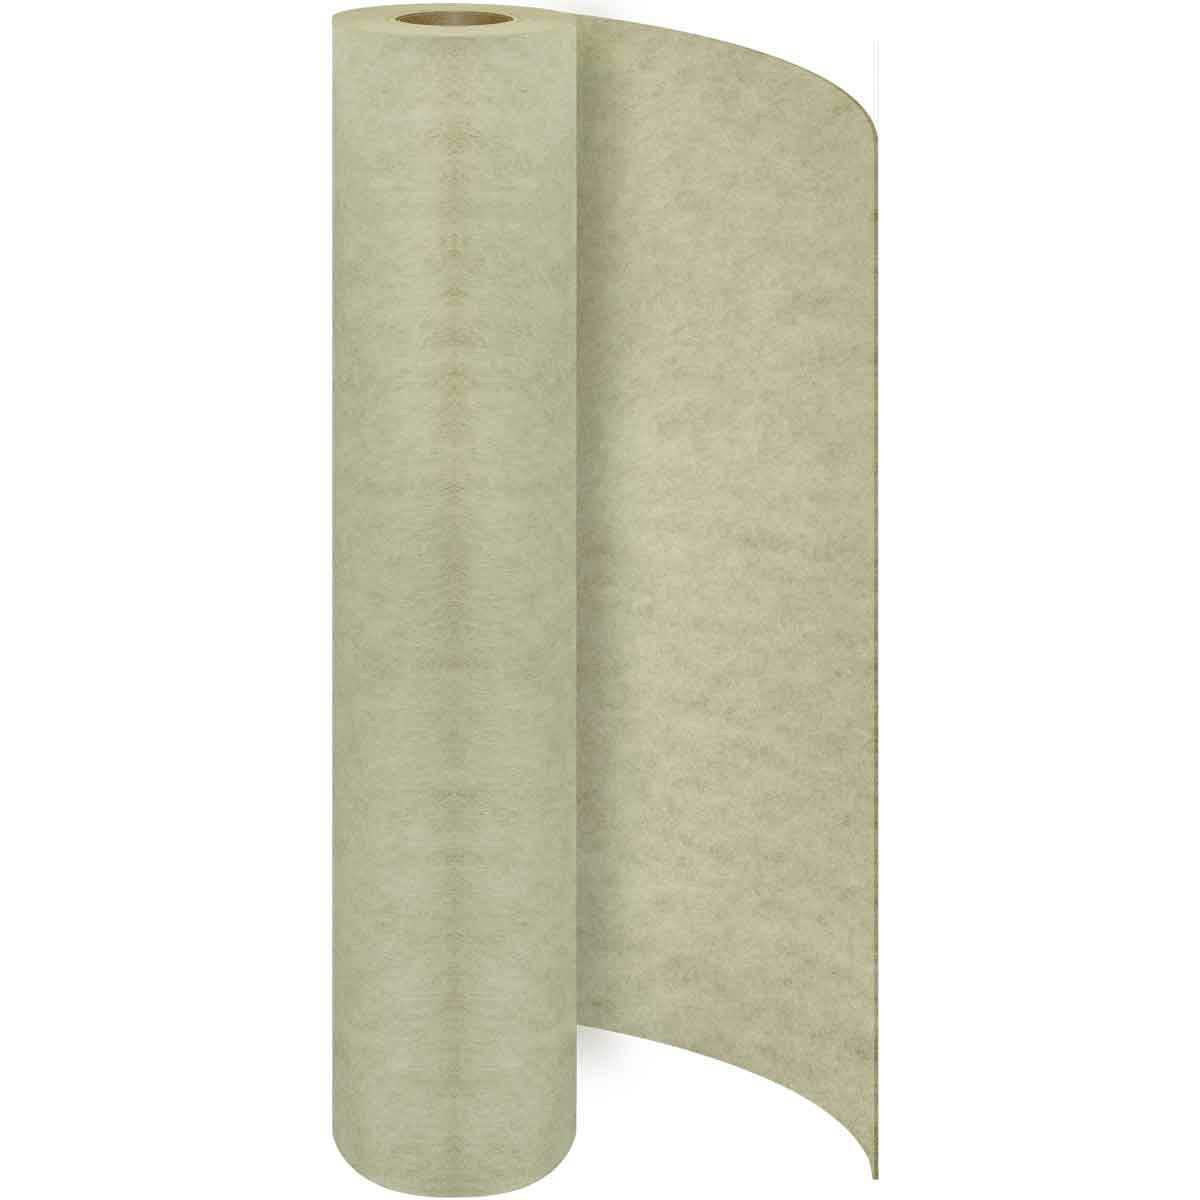 Laticrete Sheet Membrane roll